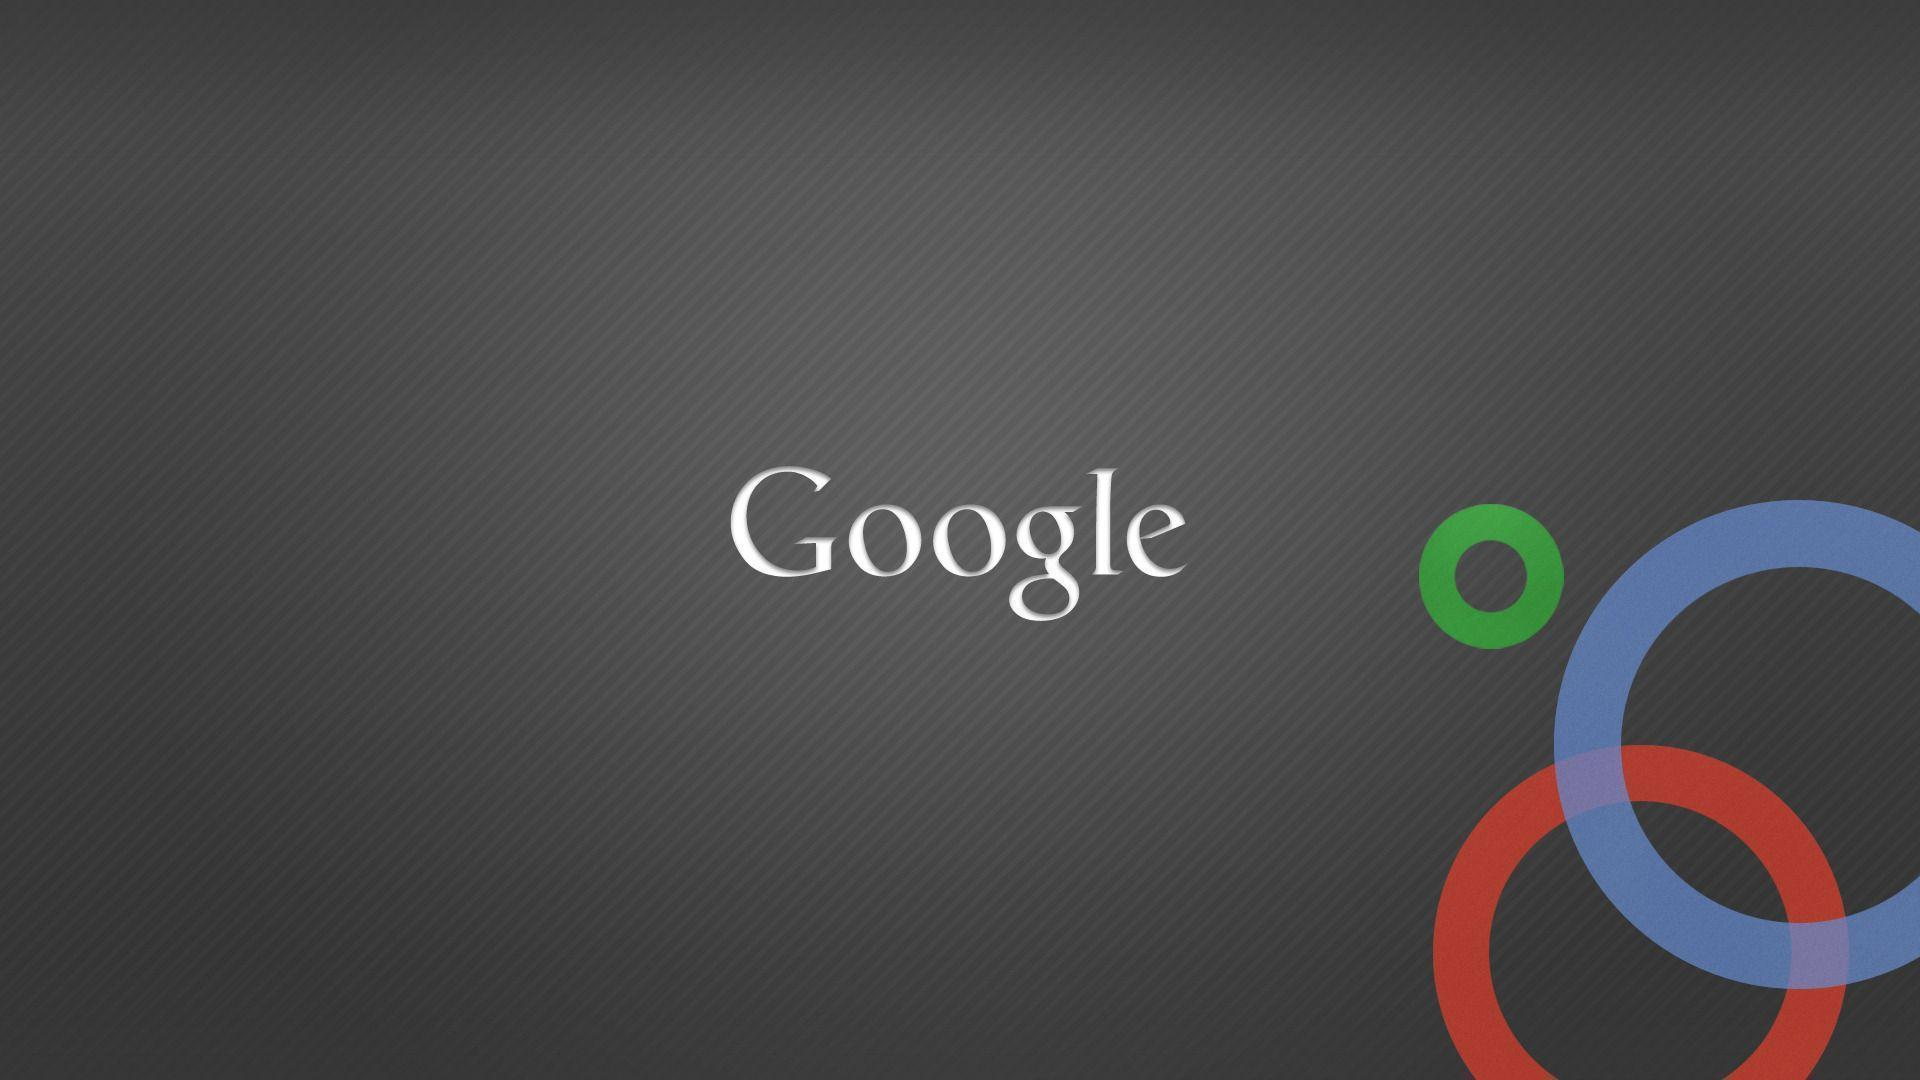 gmail wallpaper